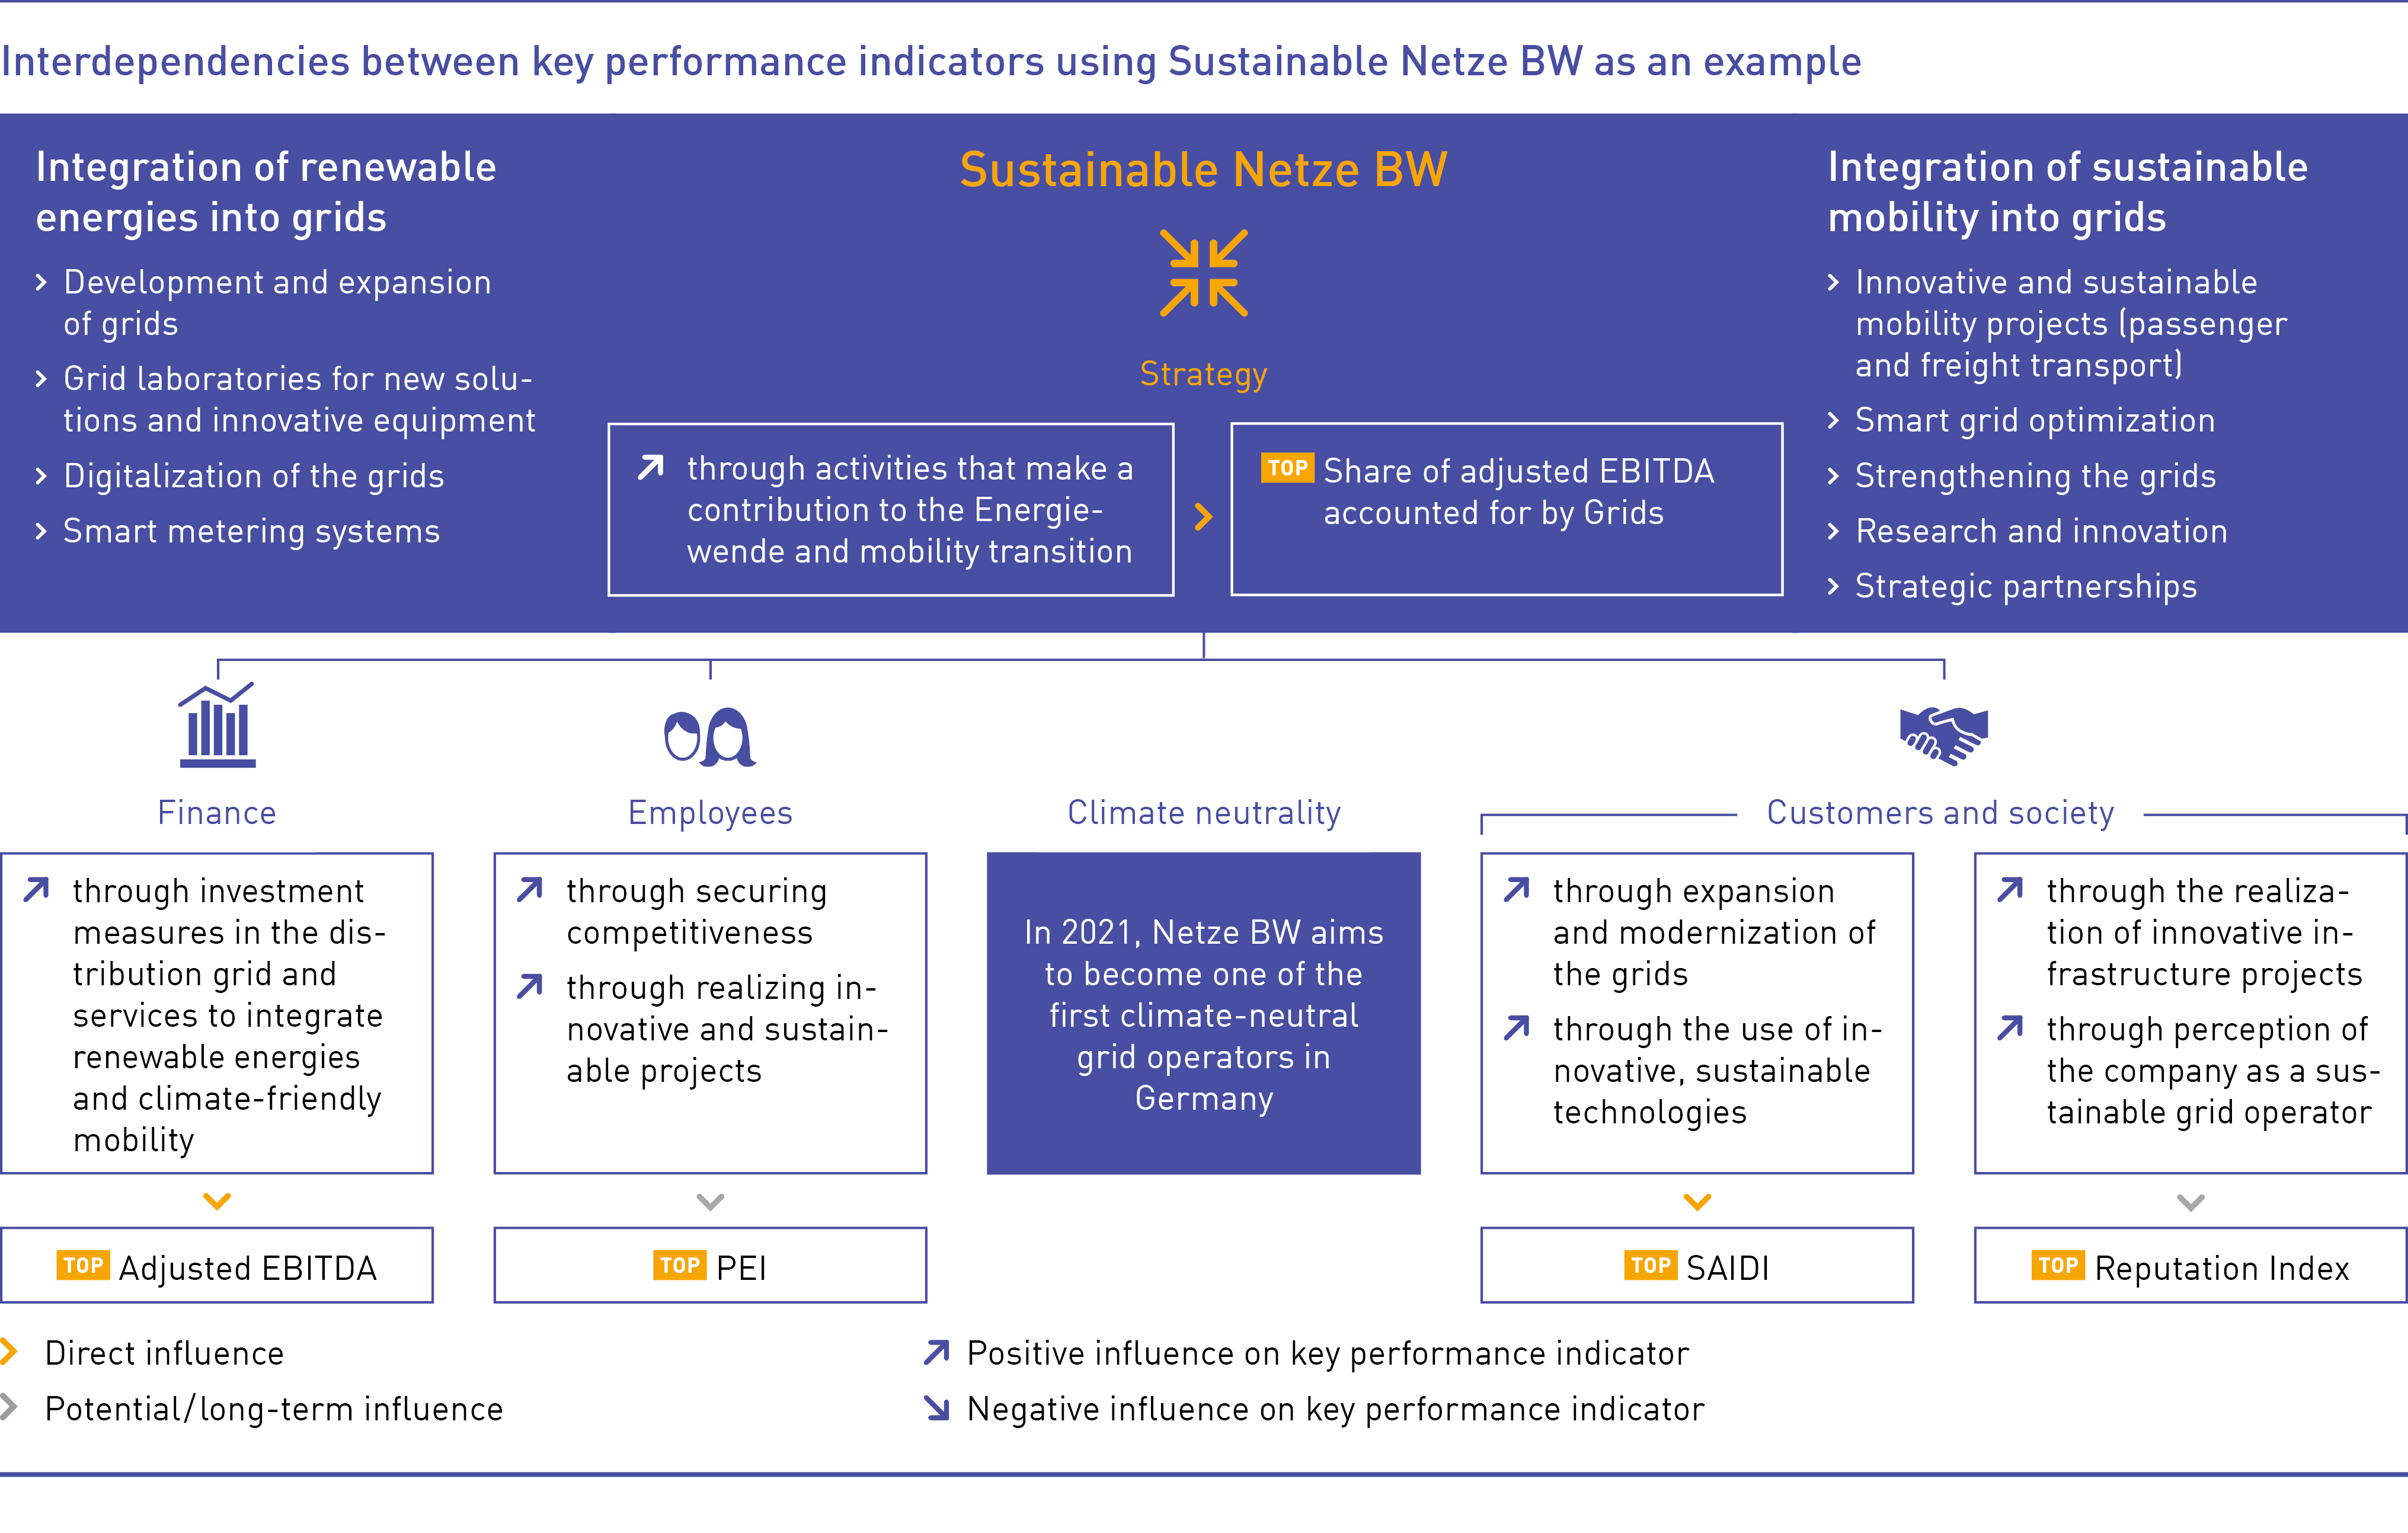 Interdependencies between key performance indicators using Sustainable Netze BW as an example